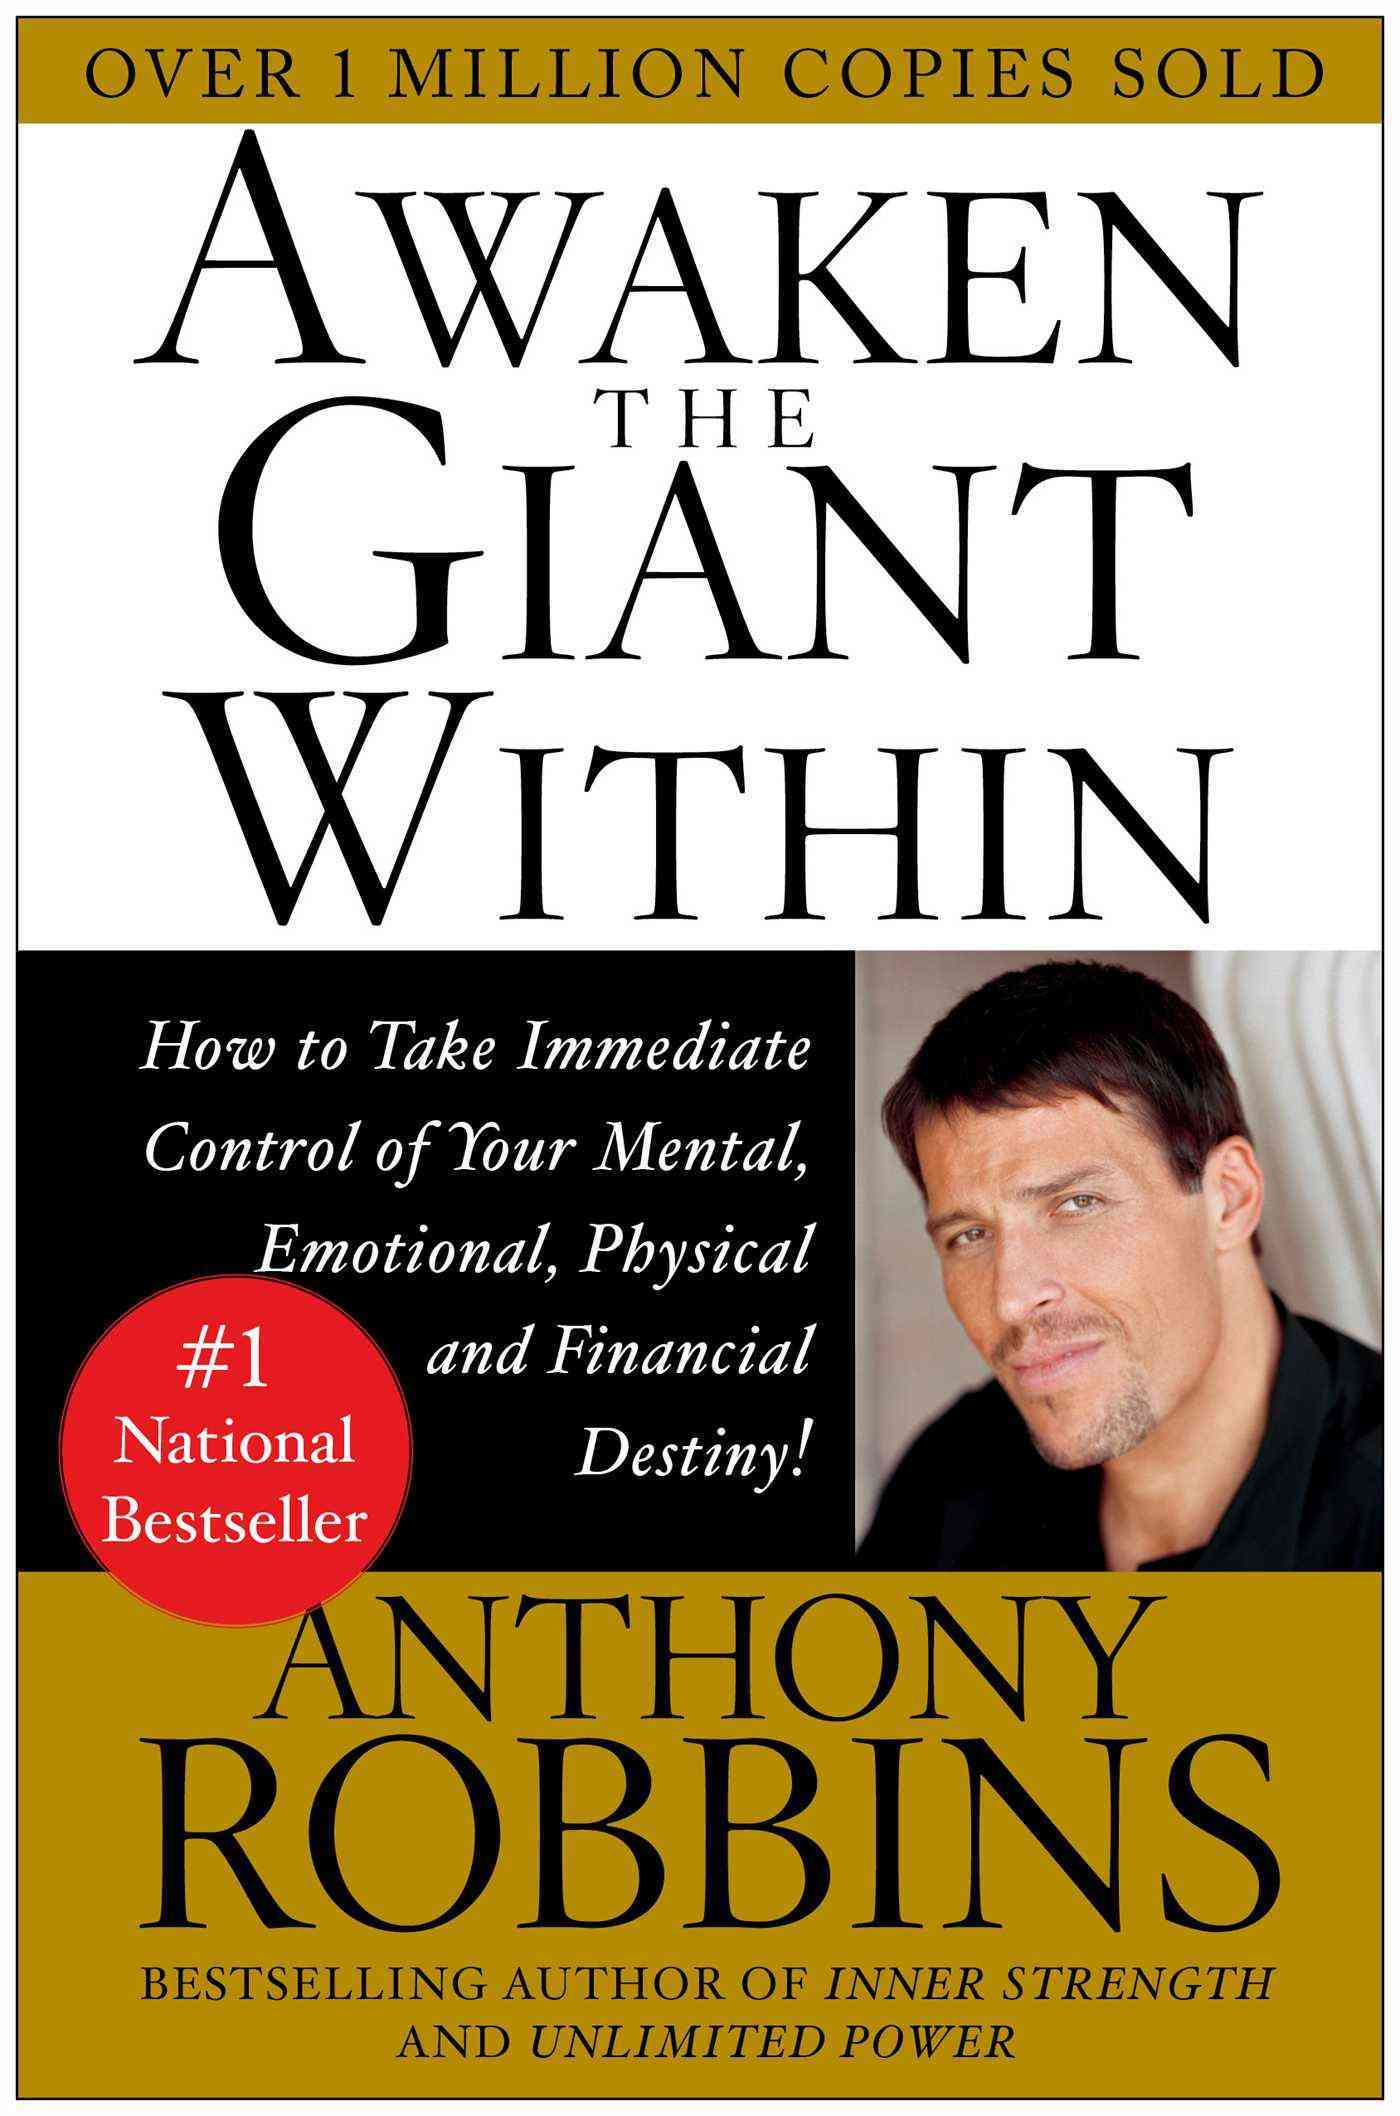 Awaken the Giant Within: How to Take Immediate Control of Your Mental, Emotional, Physical and Financial (Paperback)